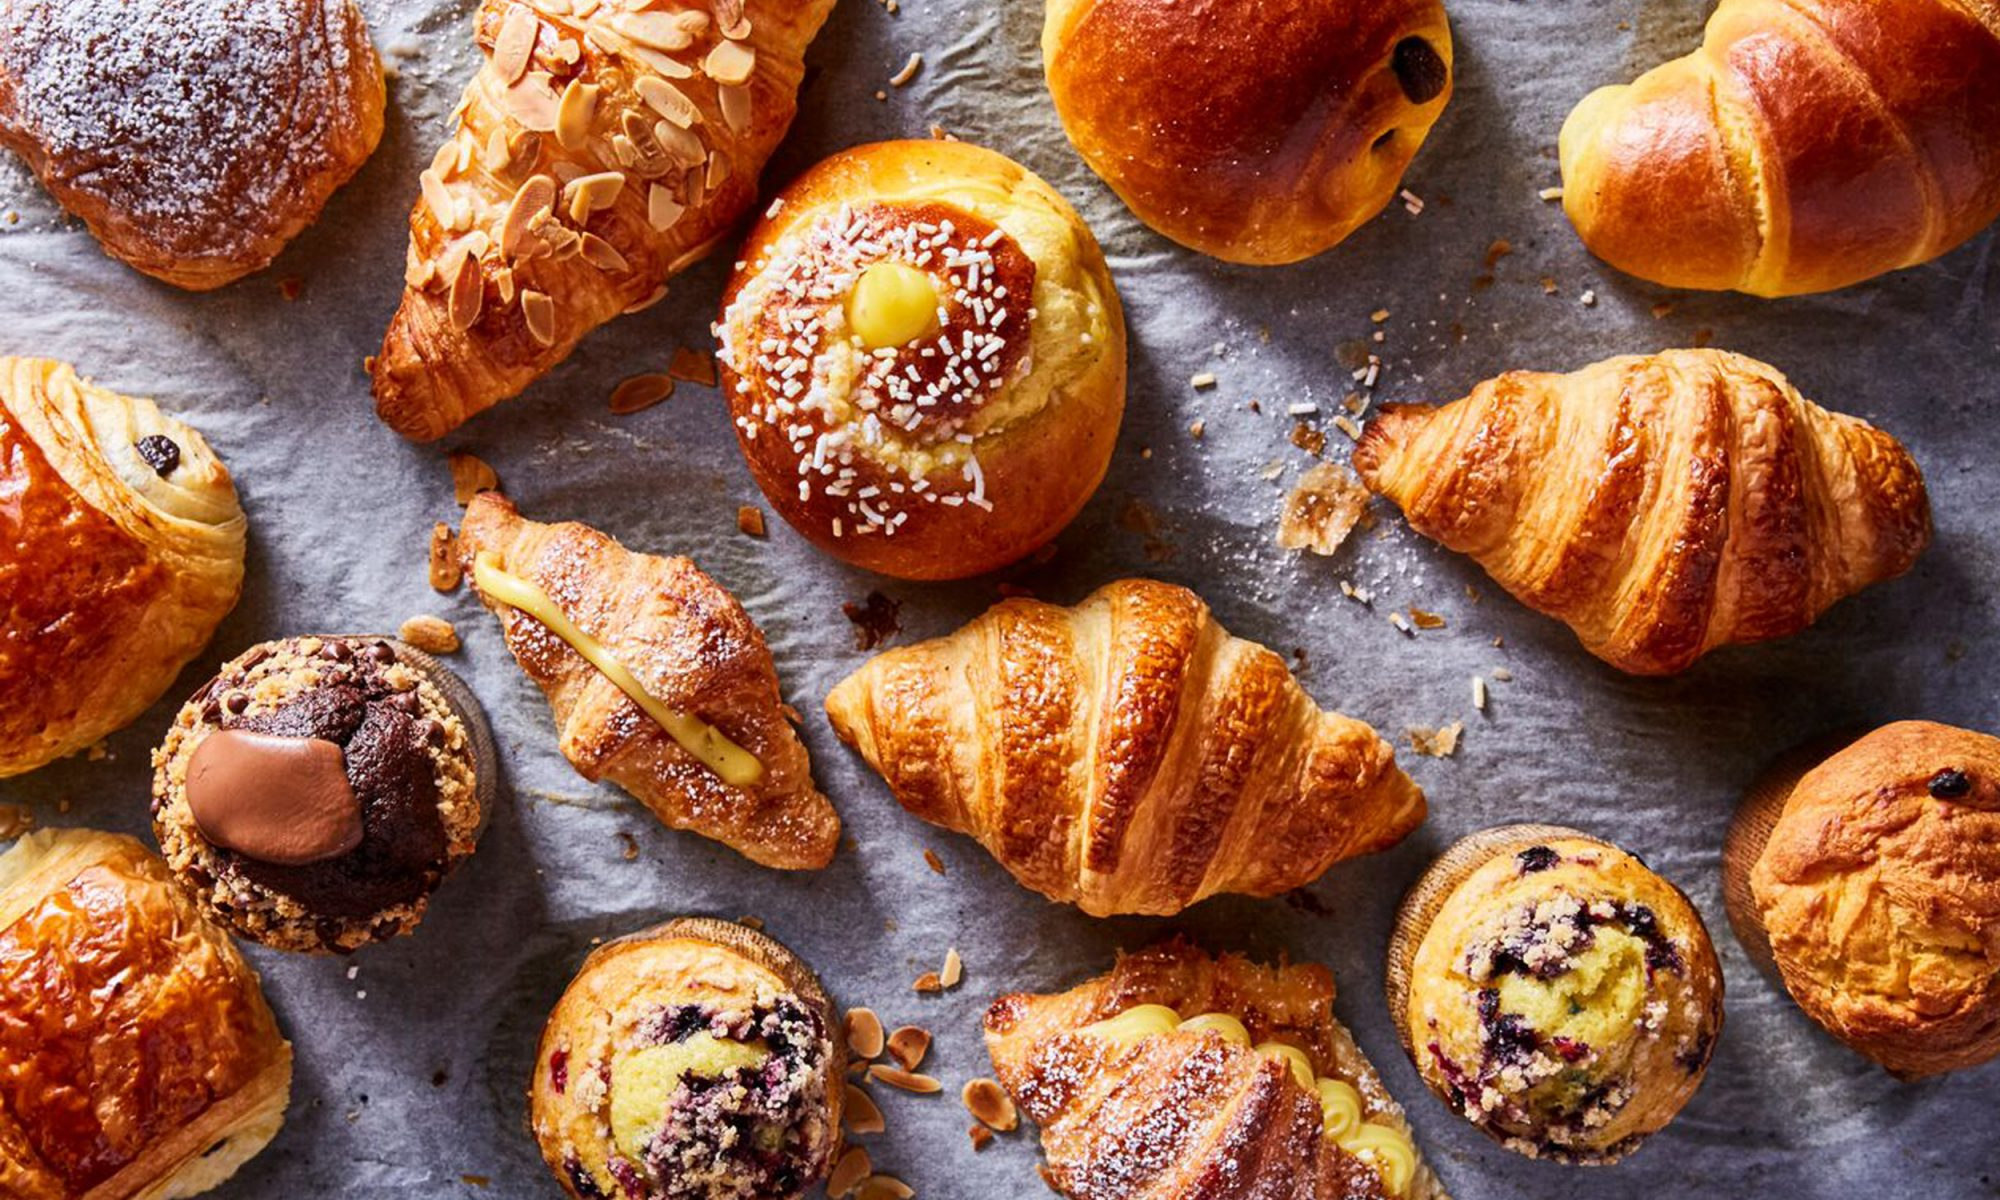 EC: Starbucks Is Partnering with Princi to Make Fresh Pastries On-Site